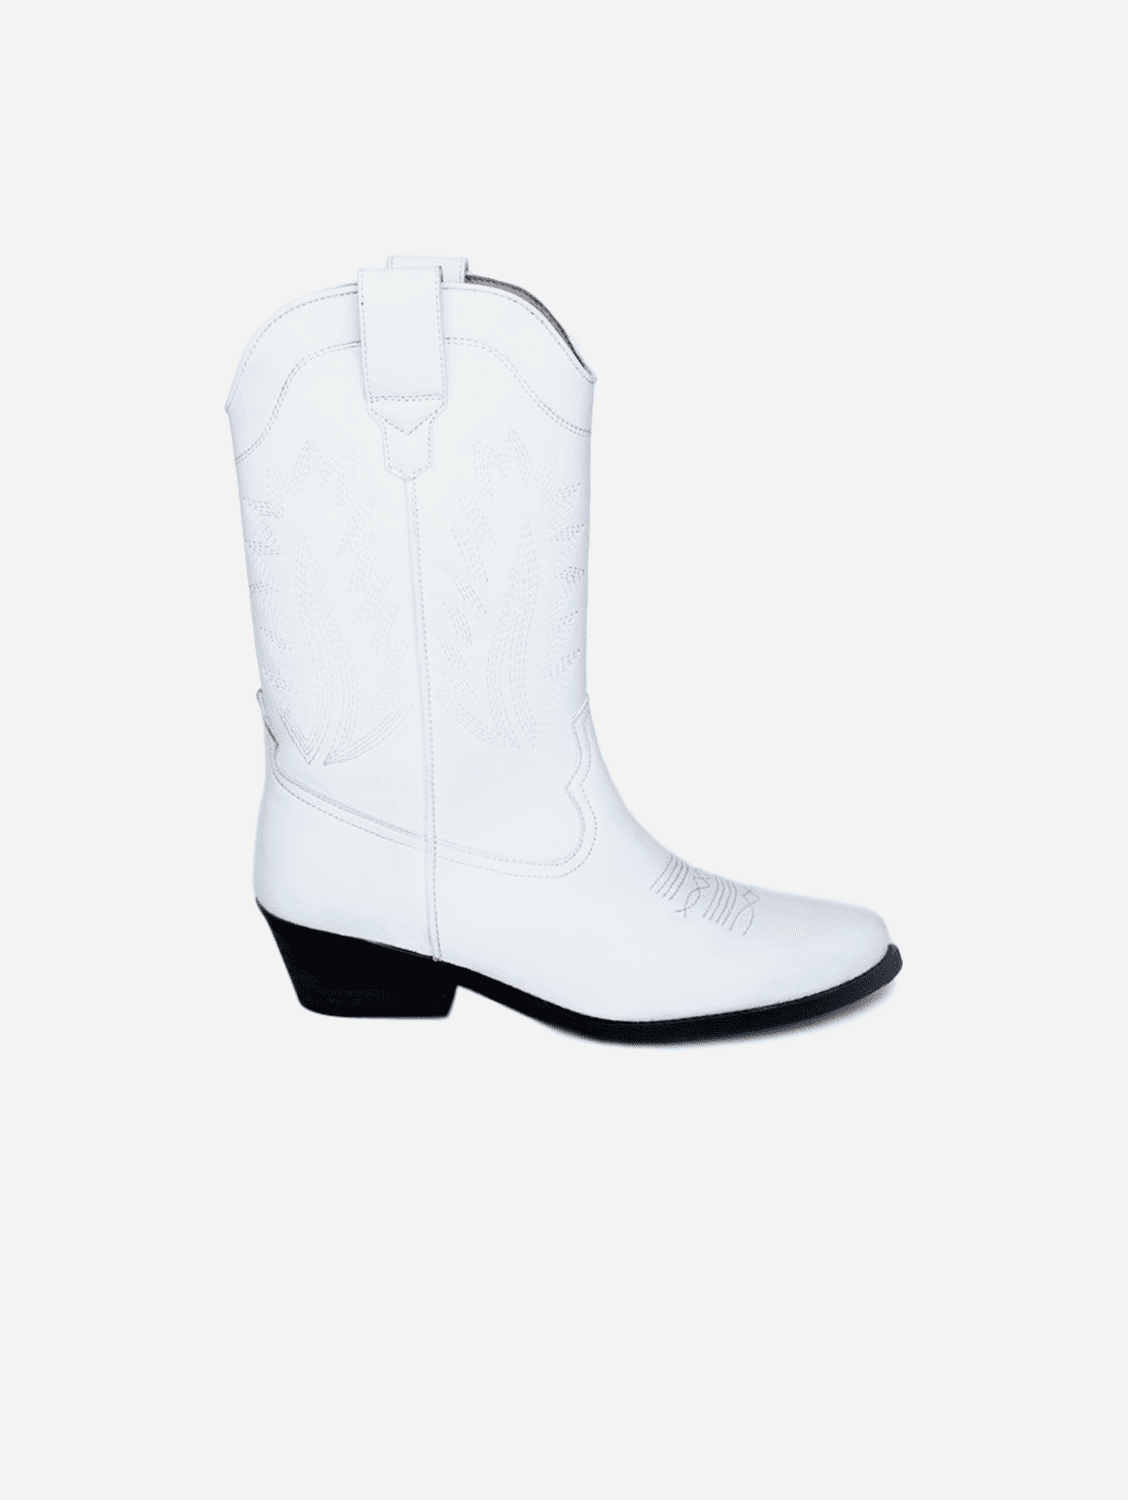 Lucky Unisex High Top Cowboy Boots | White